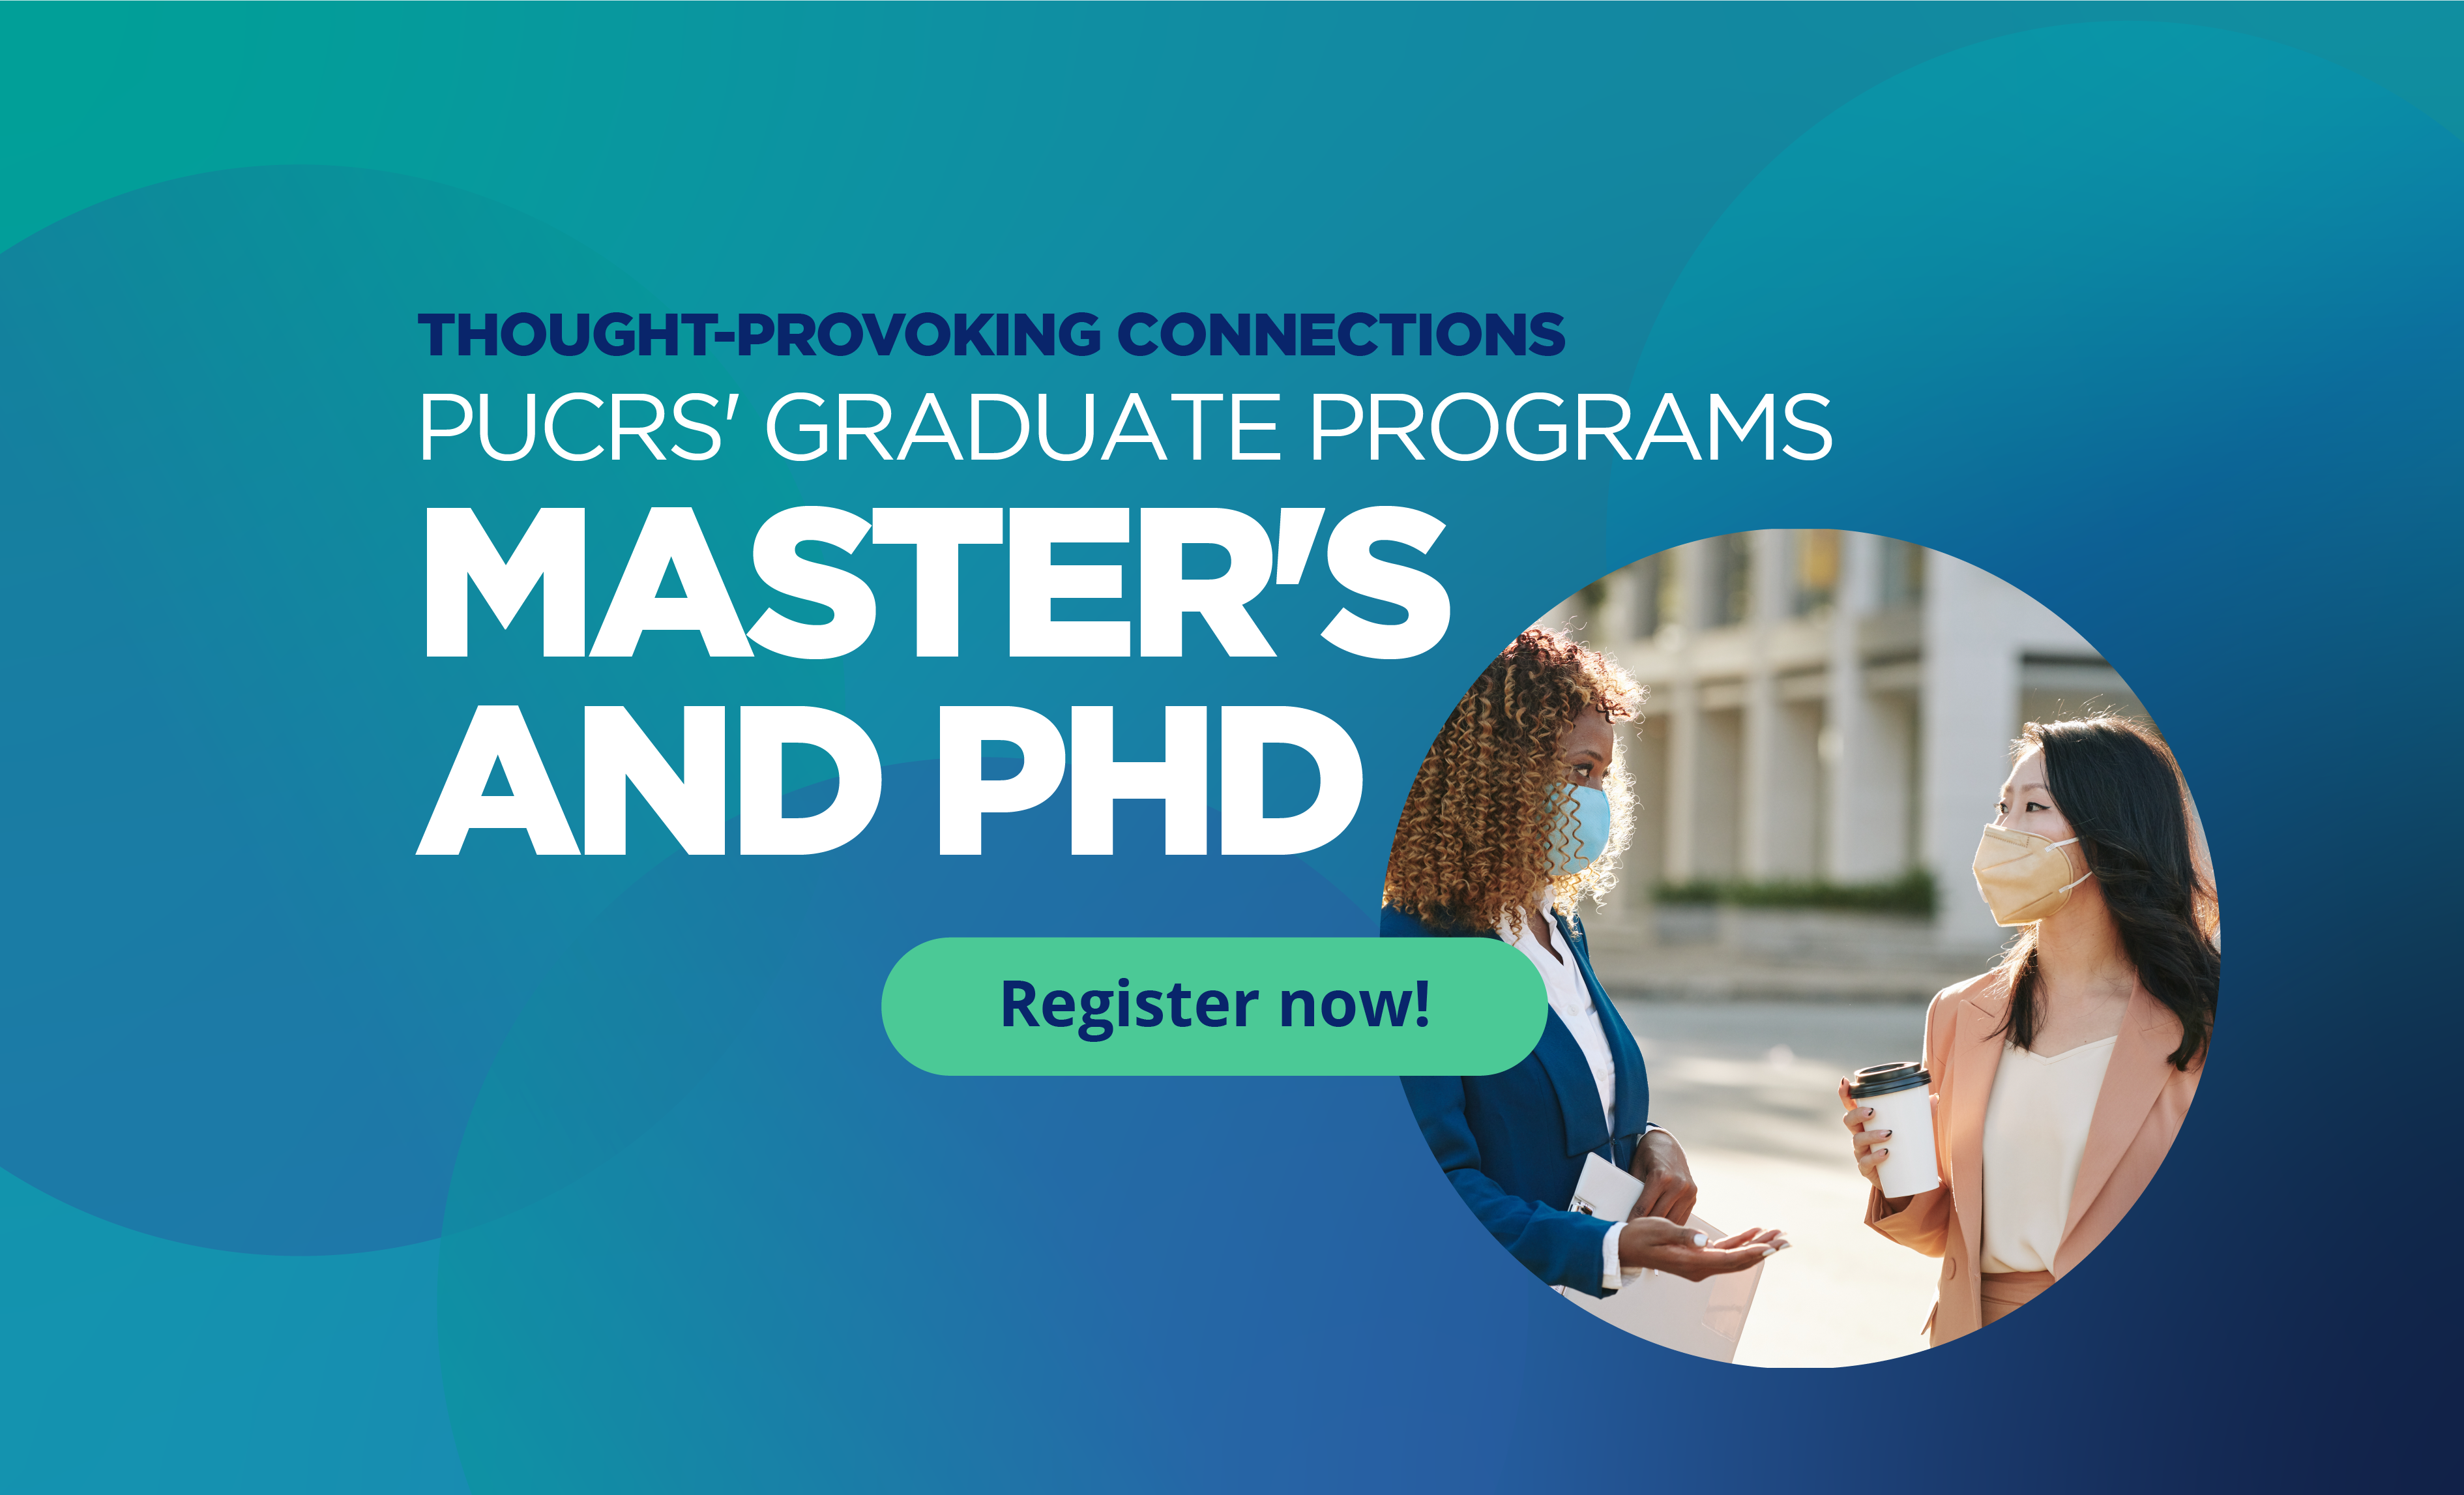 Apply now for PUCRS' Master's and PhD programs in different areas